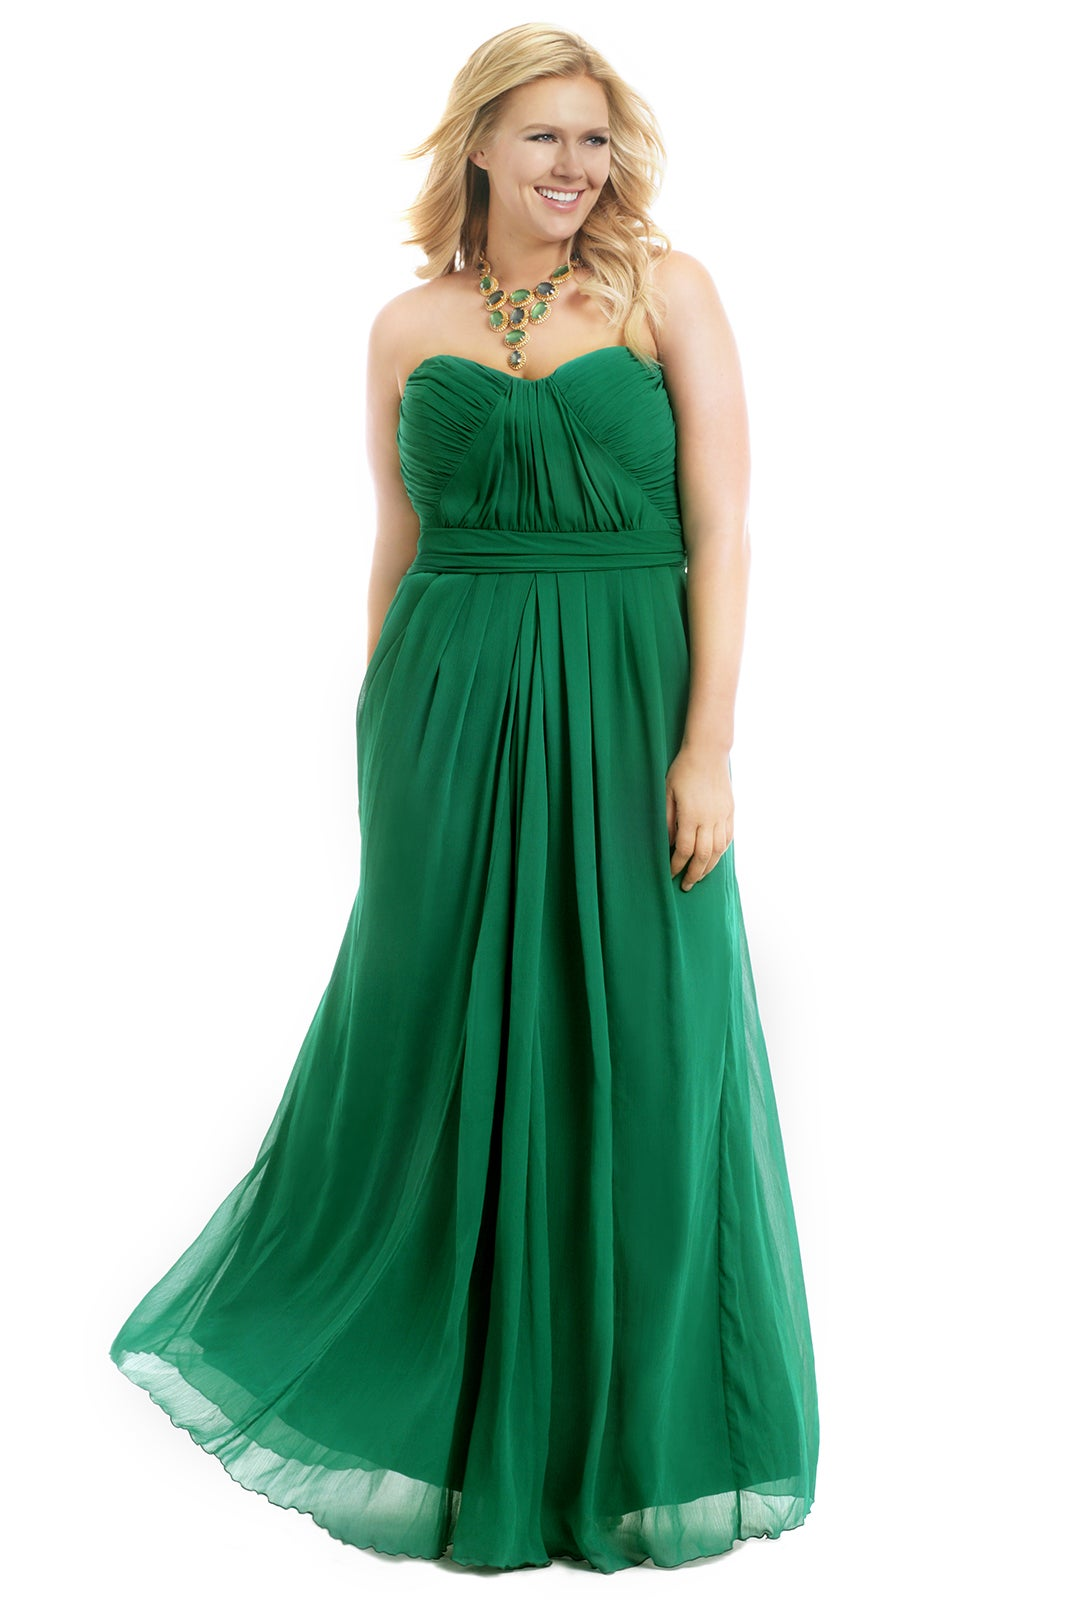 Contemporary Evening Gowns Rent Photo - Wedding and flowers ...